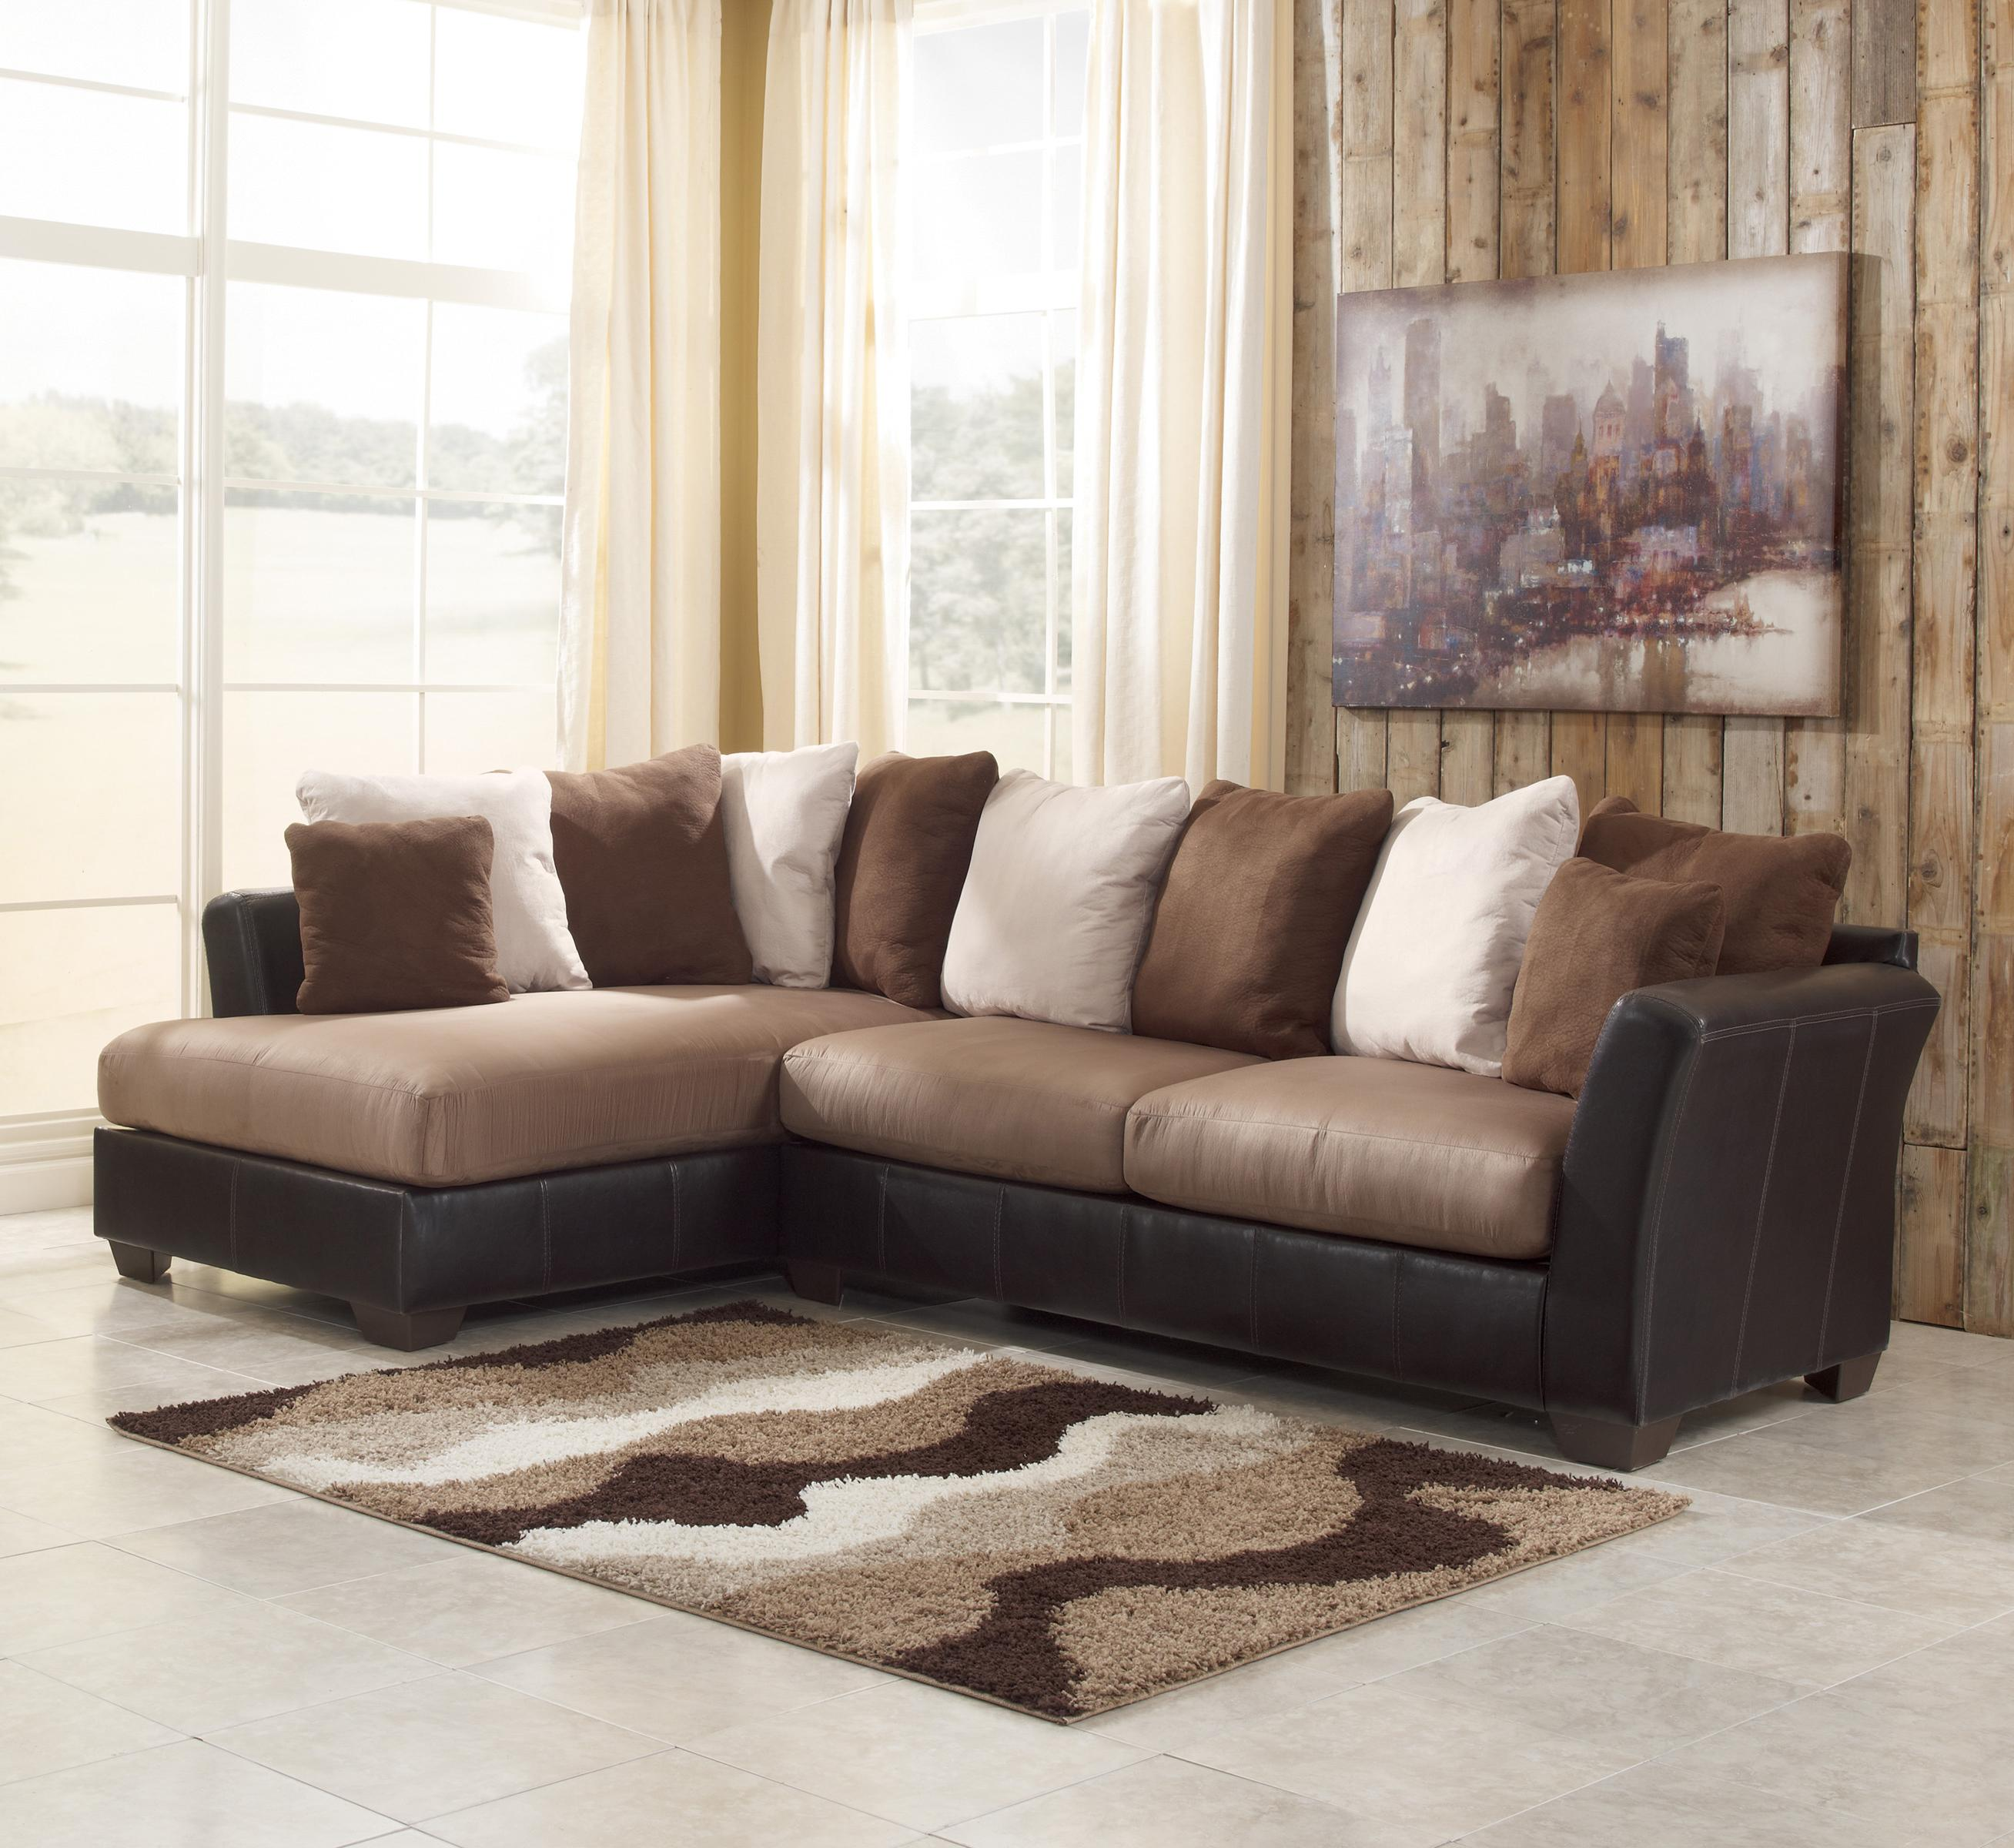 Ashley/Benchcraft Masoli - Mocha 2-Piece Sectional with Chaise - Item Number: 1420116+67